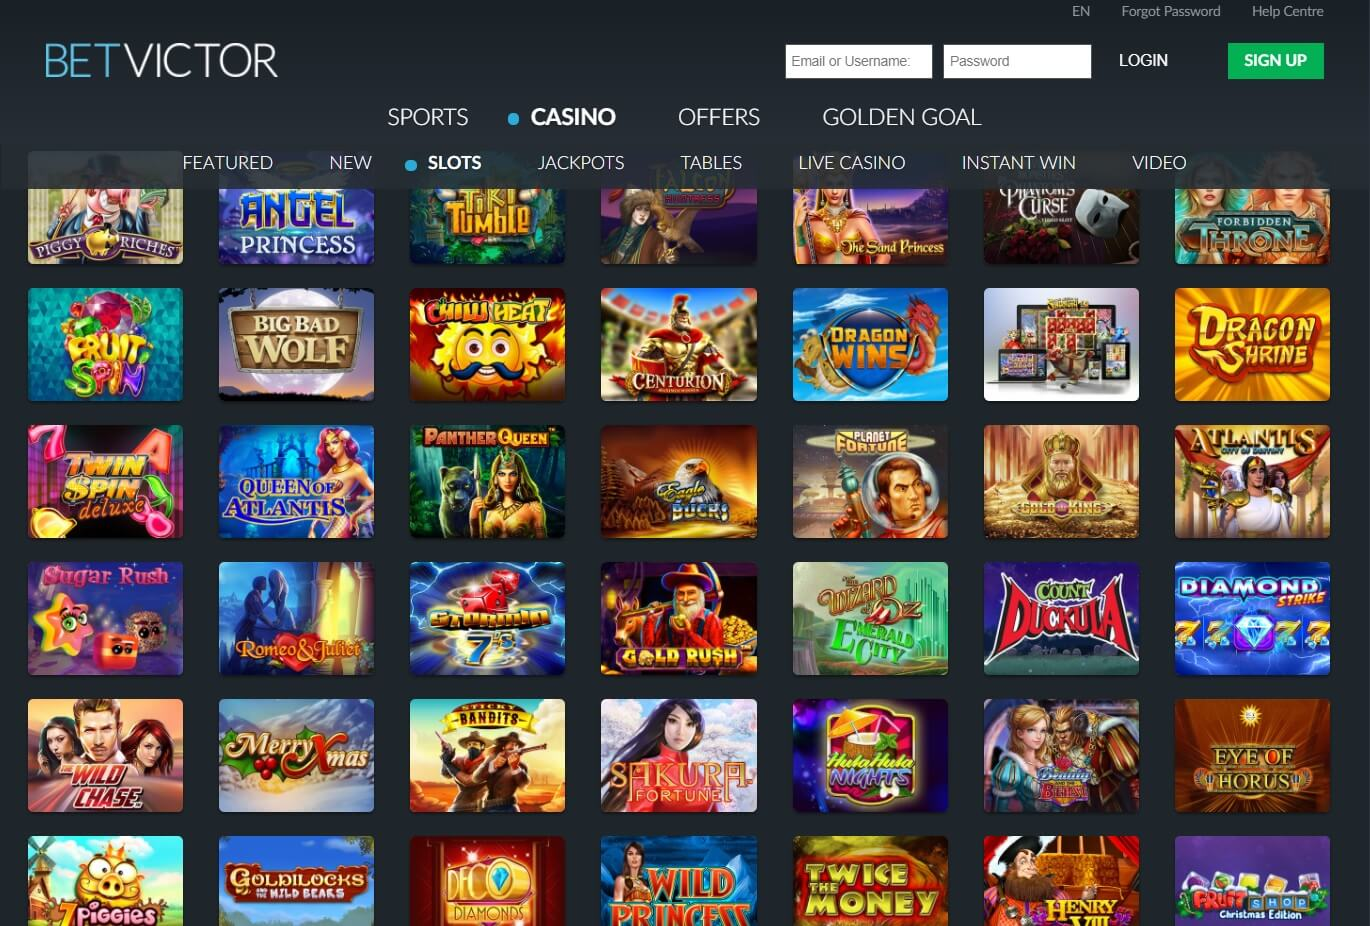 betvictor casino games and slots